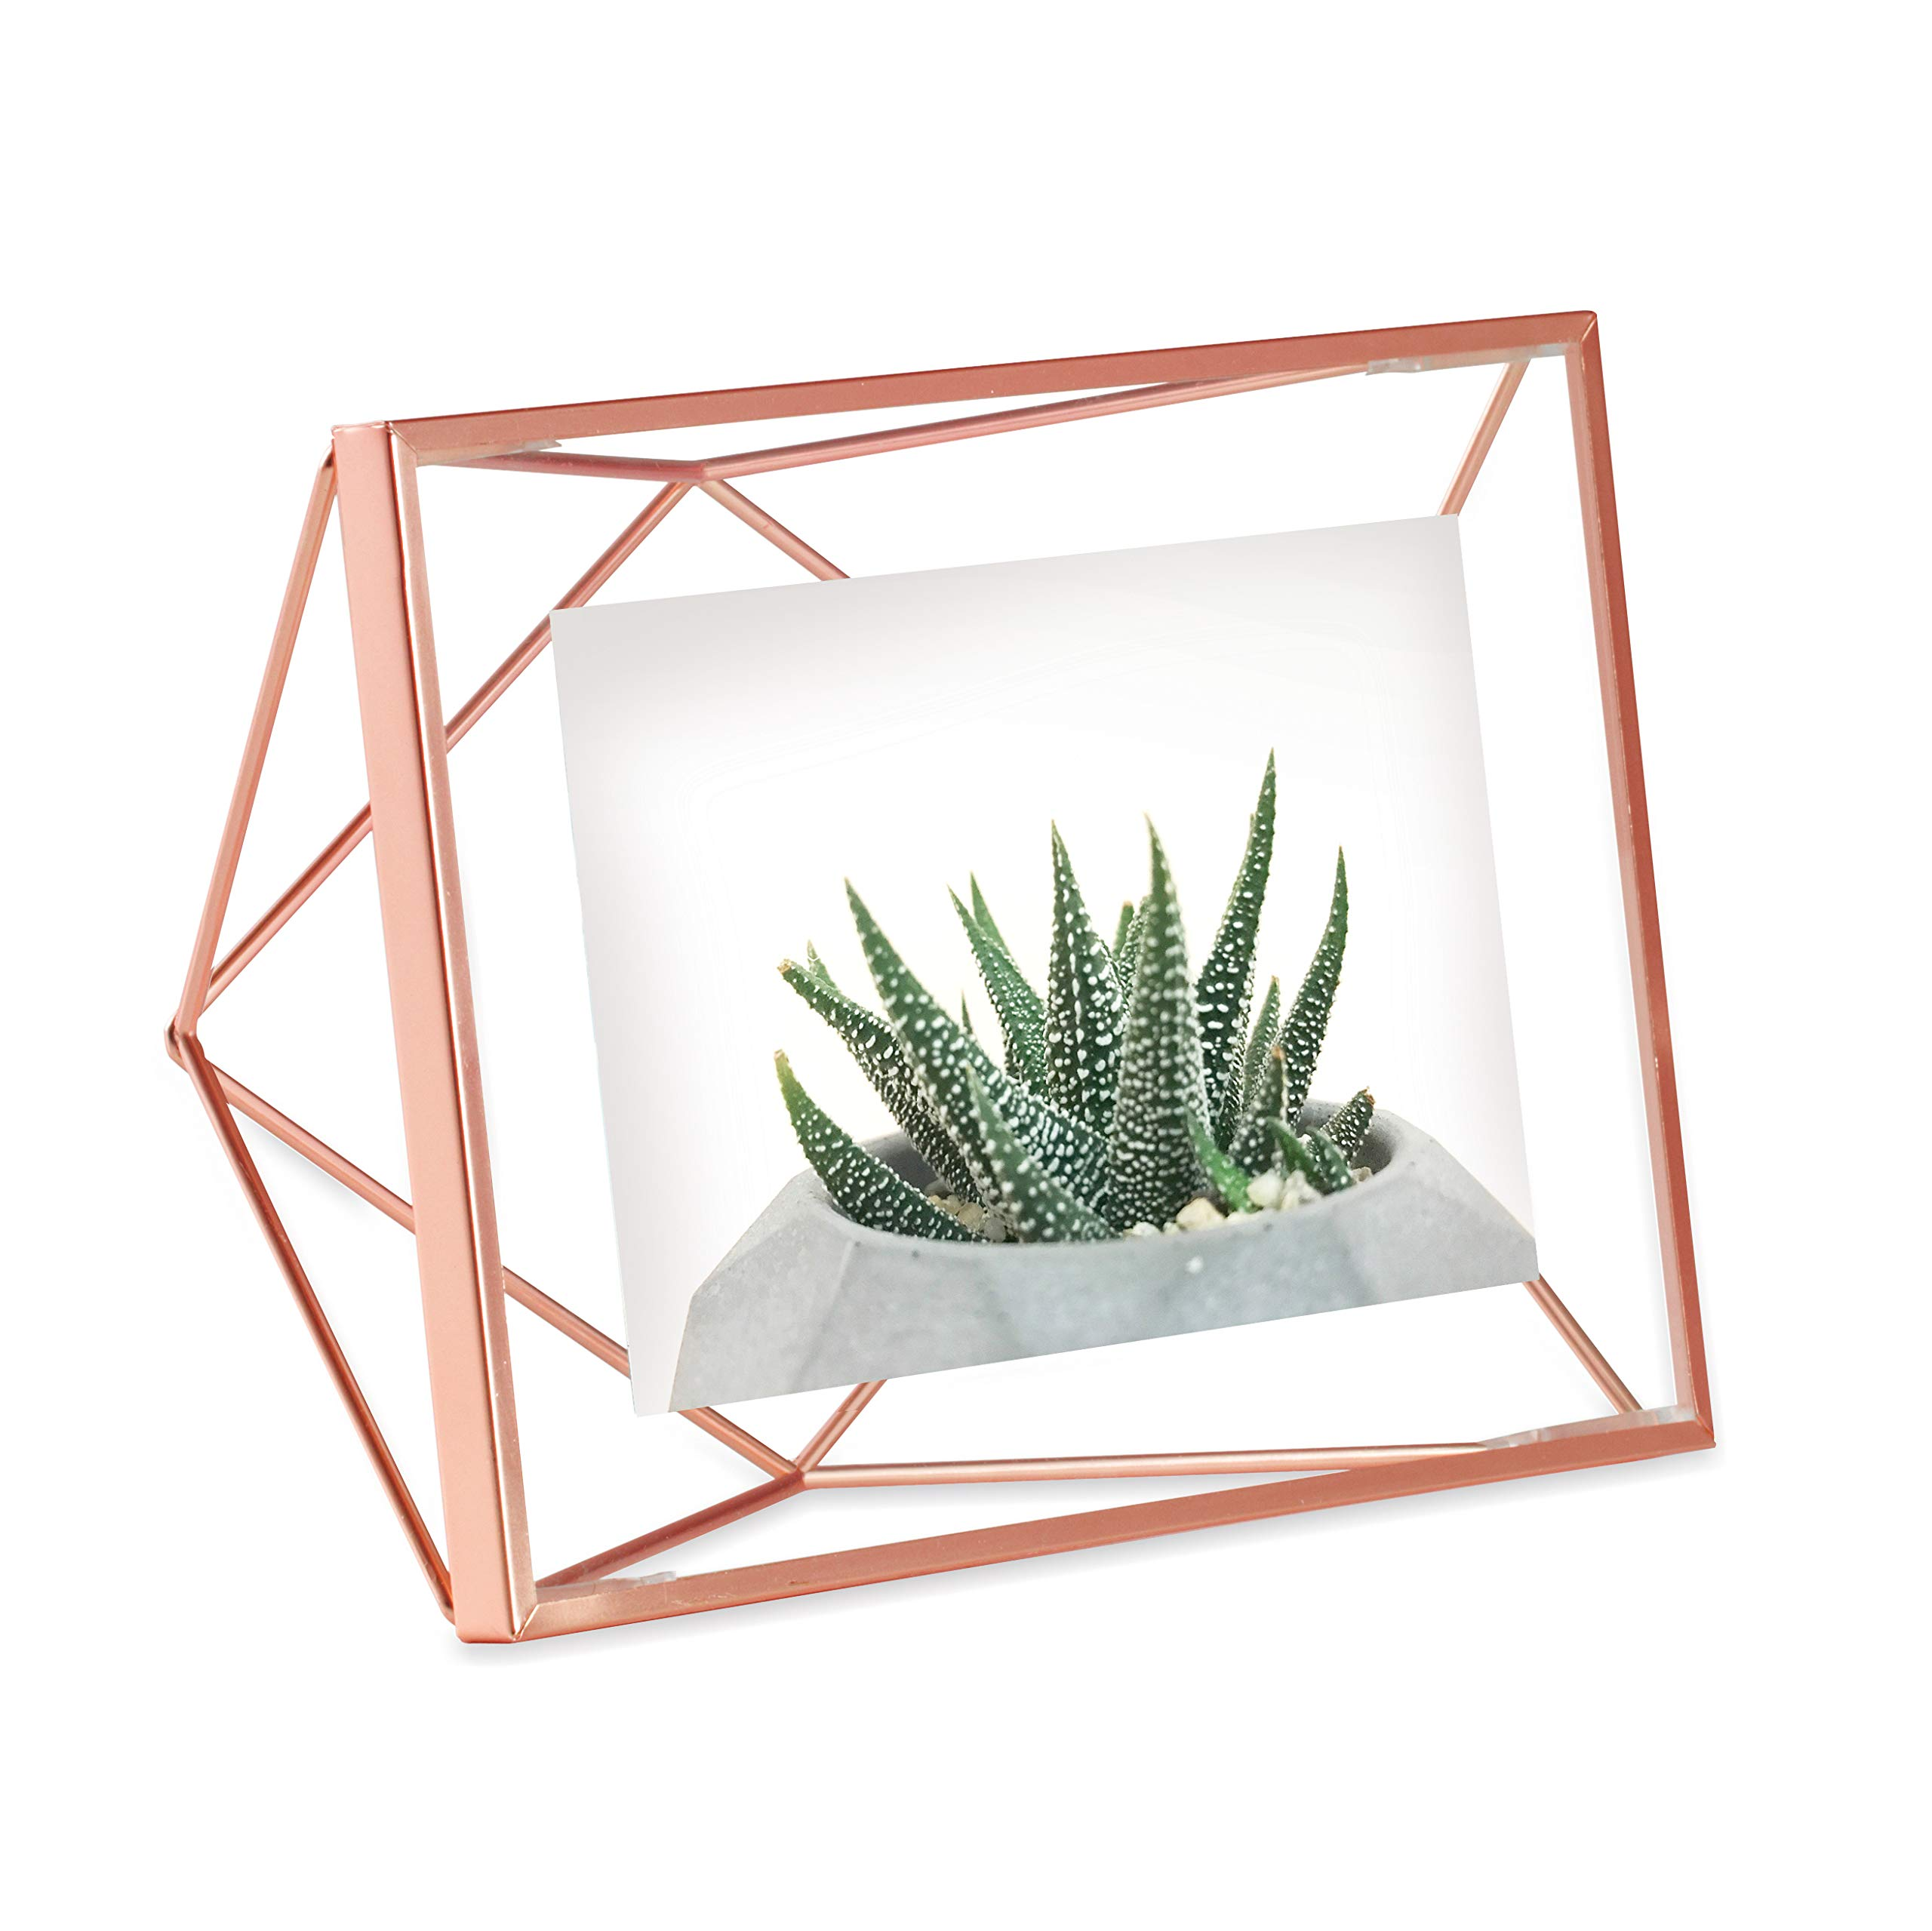 Umbra Prisma Picture Frame, 4x6 Photo Display for Desk or Wall, Copper by Umbra